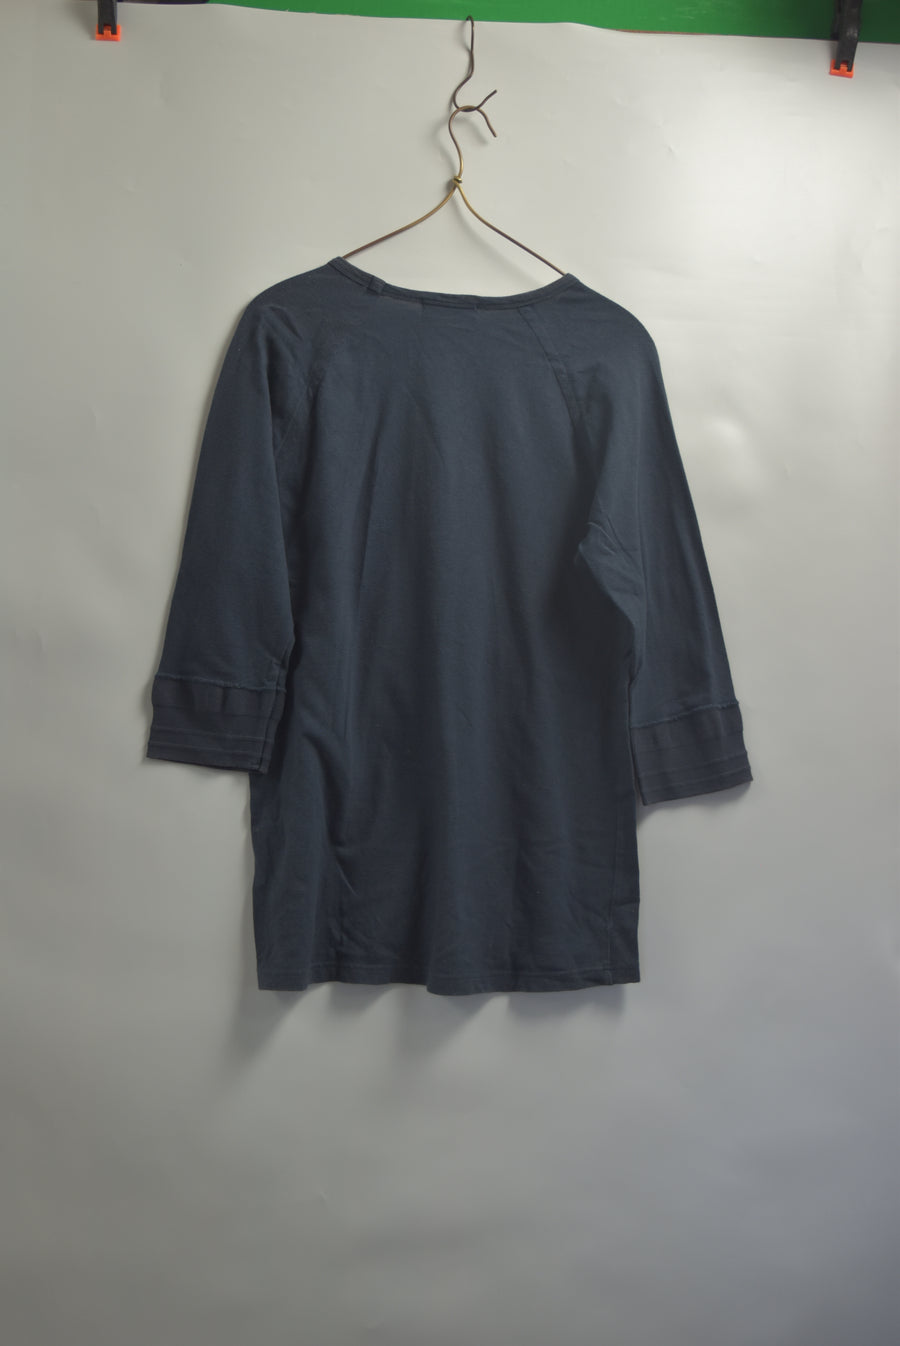 UNUSED / Football Type Shirt / 8143 - 0701 37.721